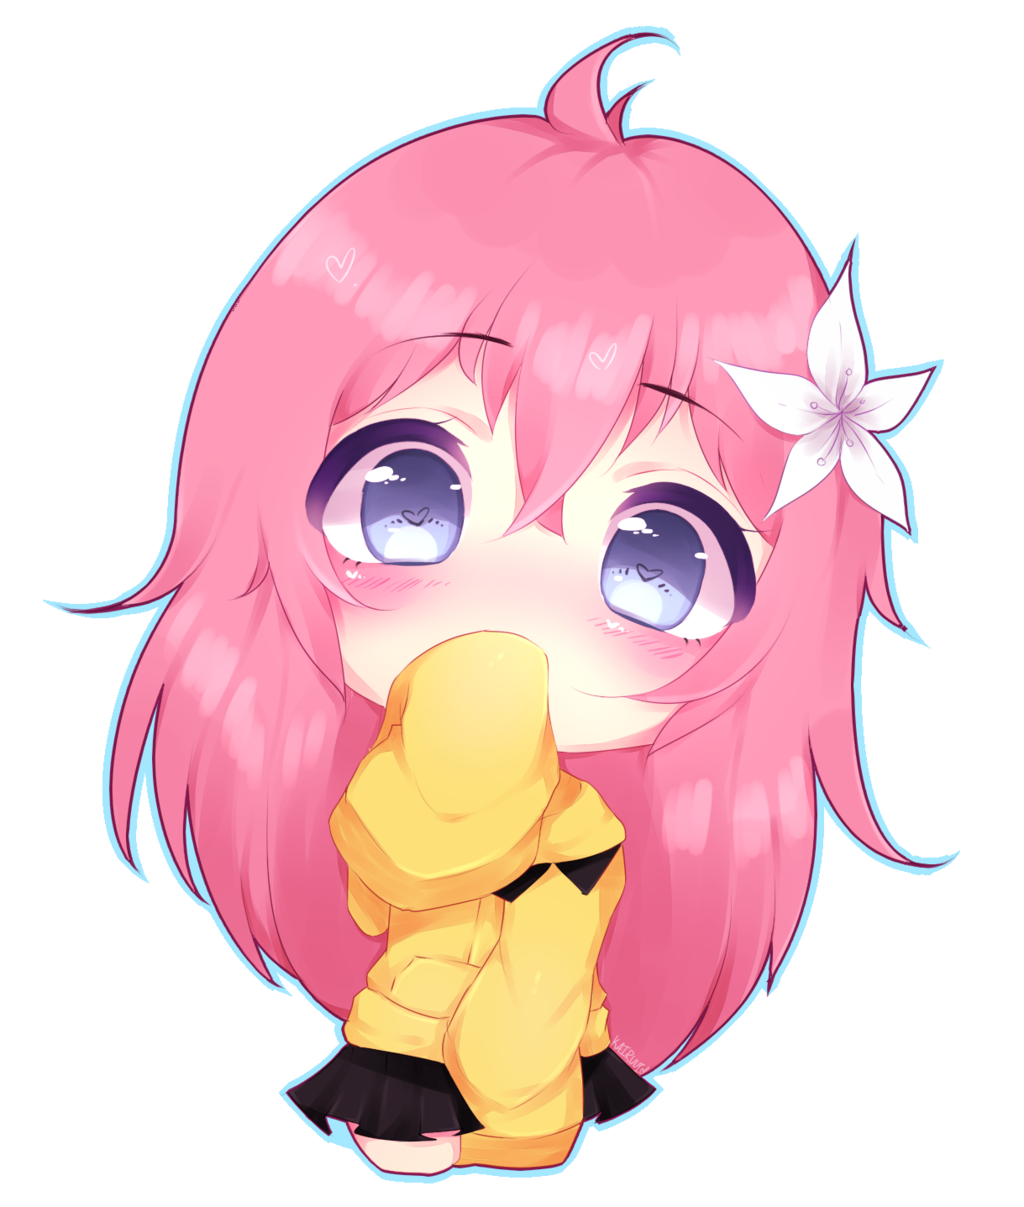 Lilypichu drawing black. Image result for persona